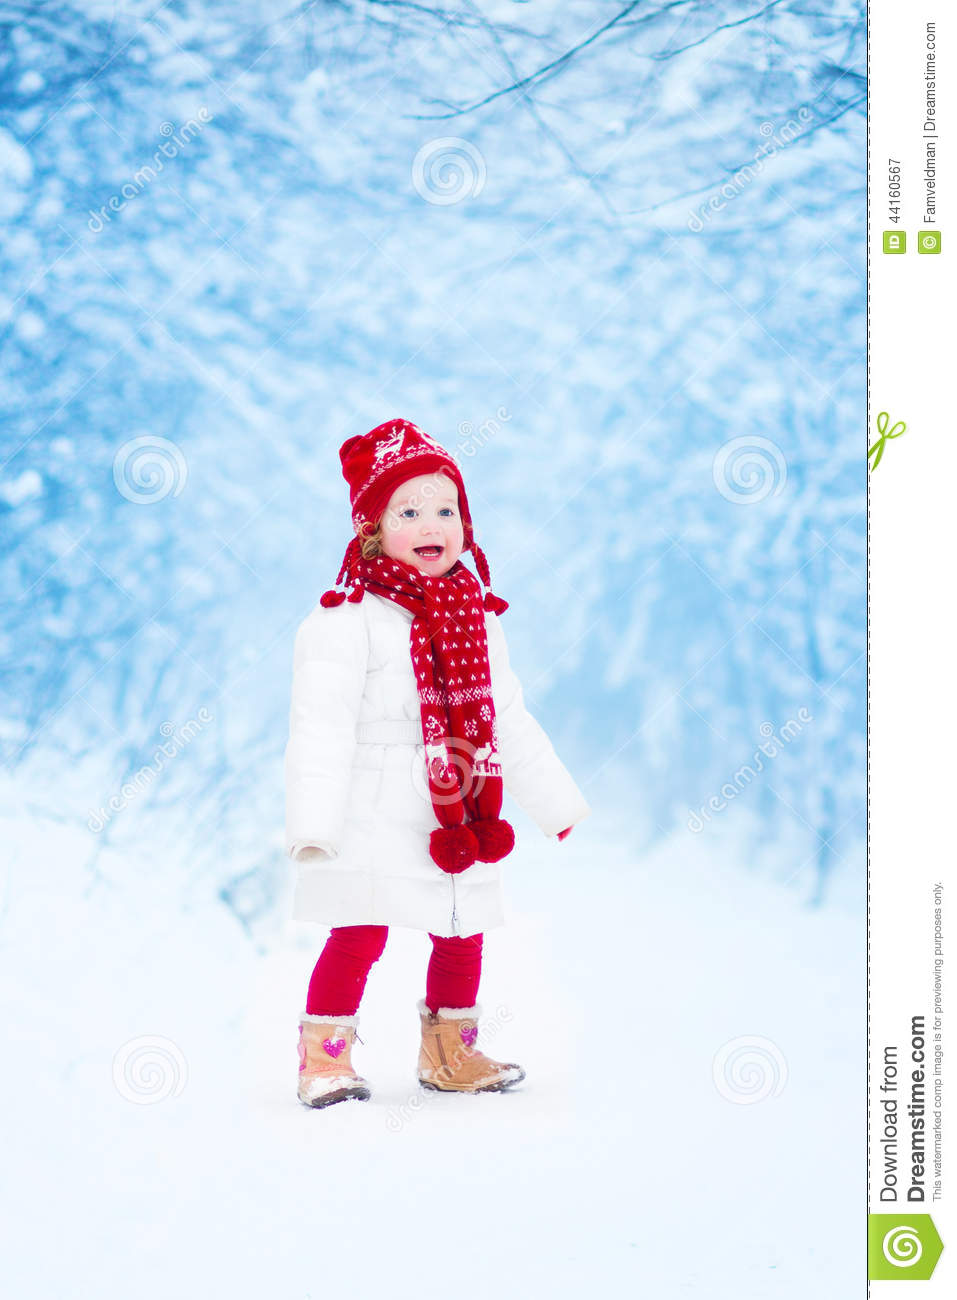 e5f2d7e86 Little Girl Running In A Snowy Park Stock Image - Image of happiness ...